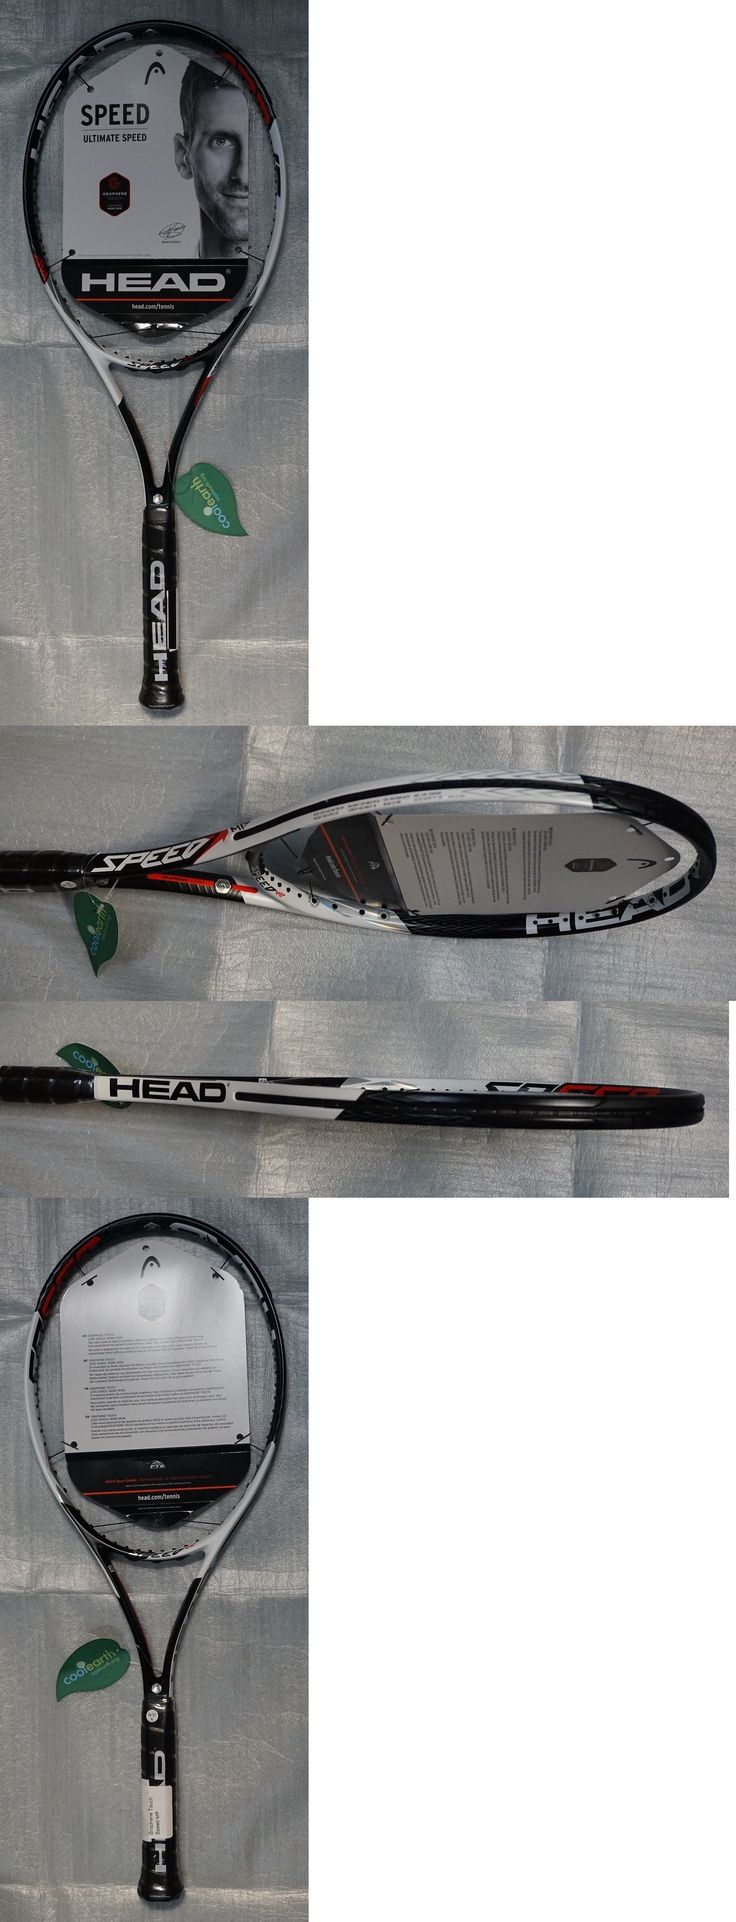 Racquets 20871: New Head Graphene Touch Speed Mp 4 3 8 Tennis Racquet Racket Djokovic 2016 -> BUY IT NOW ONLY: $209.99 on eBay!